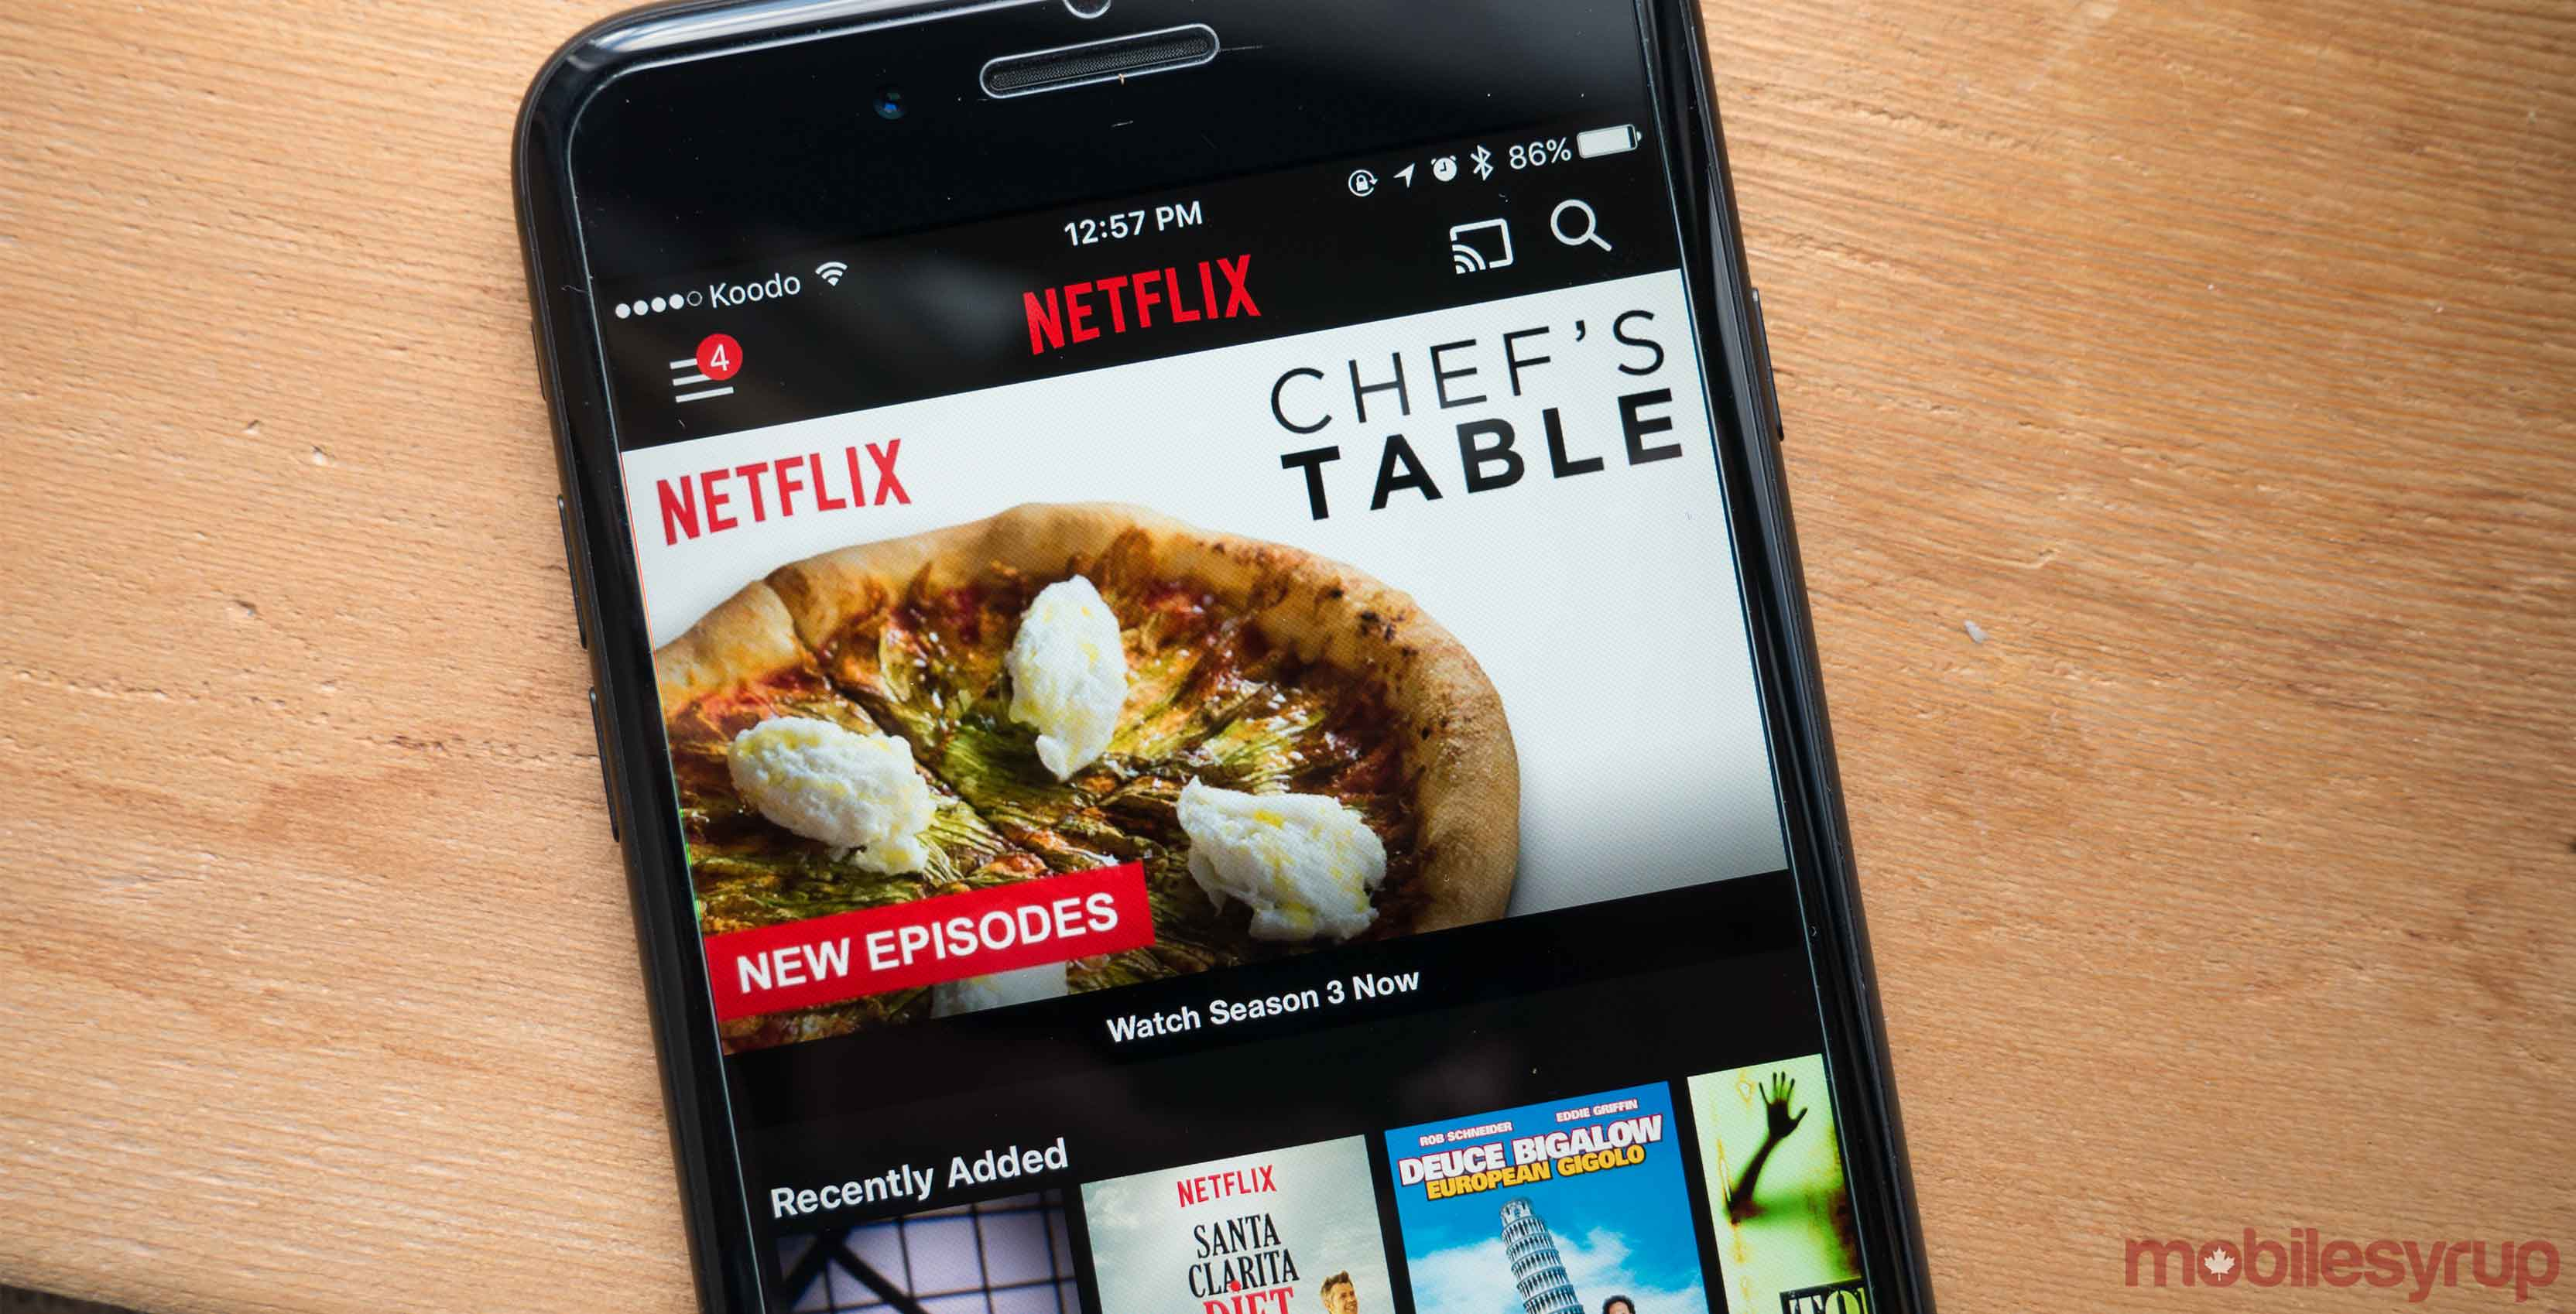 Netflix on phone - Chef's Table